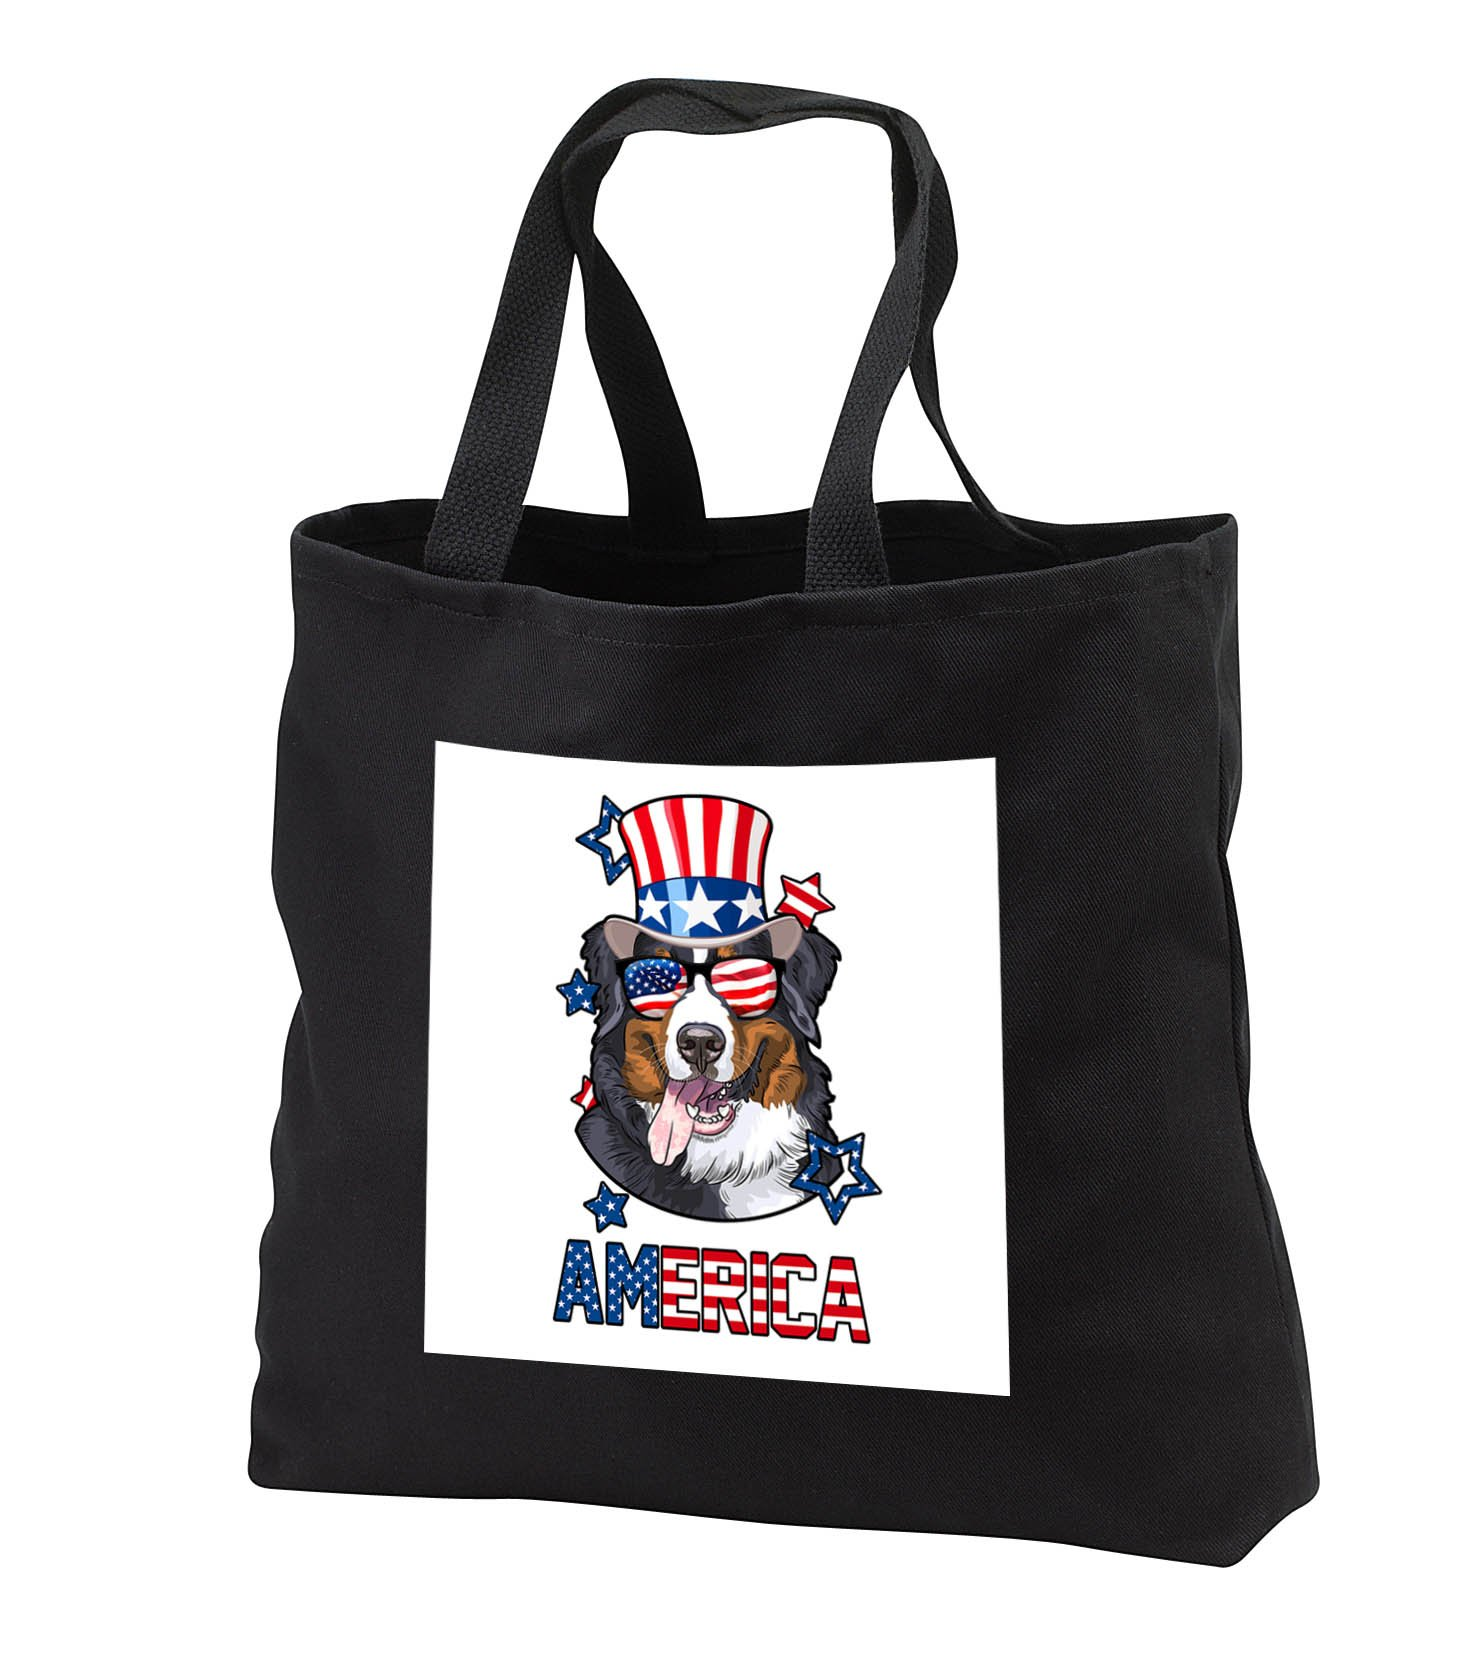 Patriotic American Dogs - Bernese Mountain Dog With American Flag Sunglasses and Tophat America - Tote Bags - Black Tote Bag JUMBO 20w x 15h x 5d (tb_284230_3)